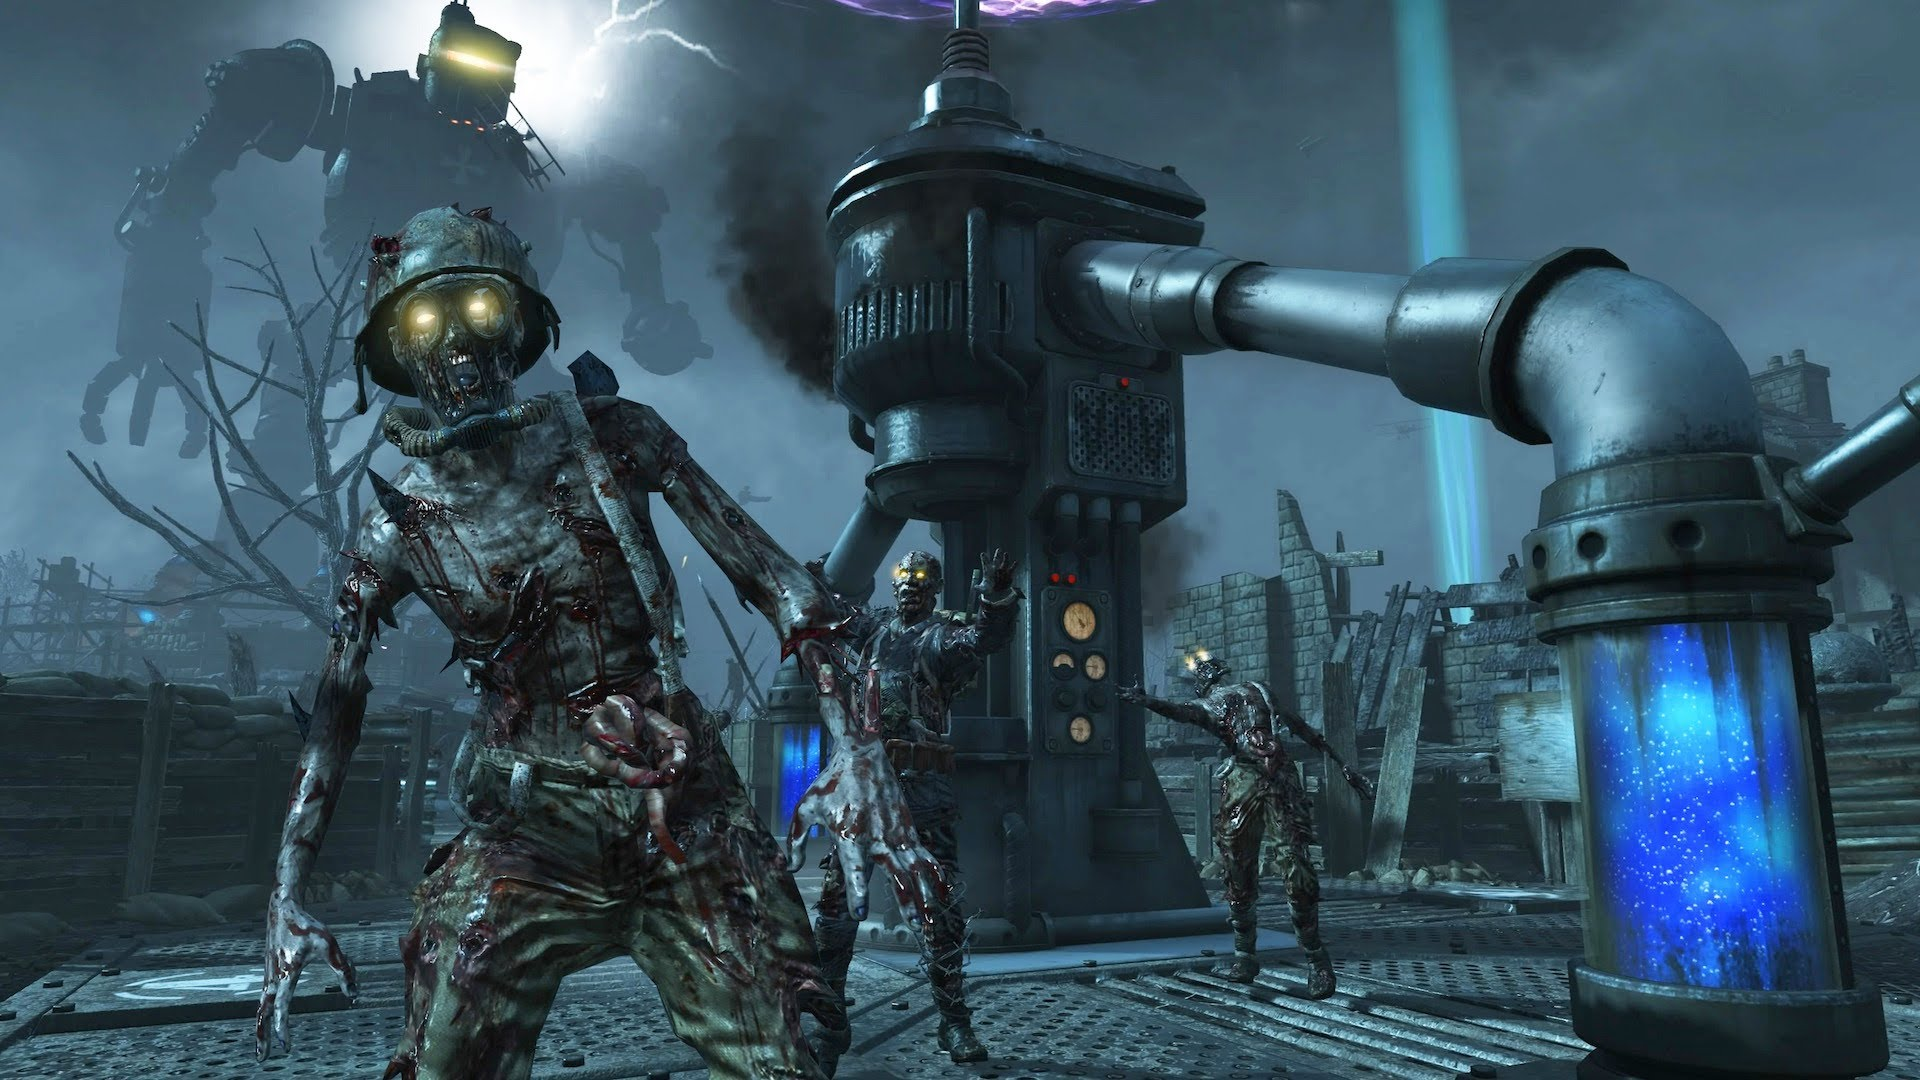 Treyarch is remastering eight classic Zombies maps for Black Ops III